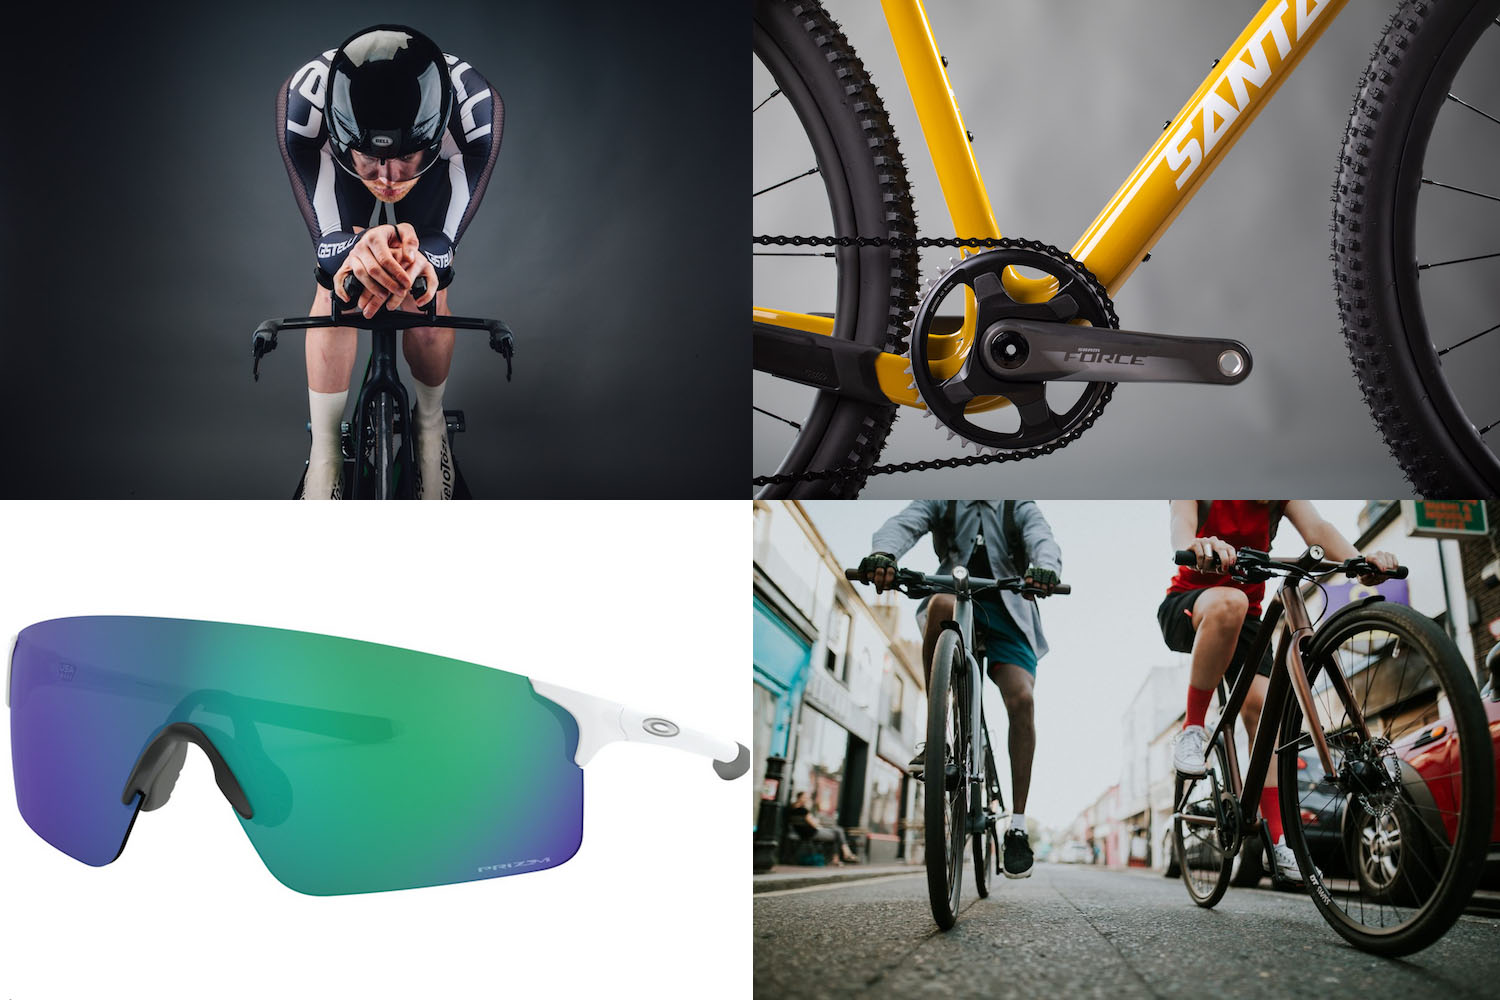 Tech of the week: new bikes from Santa Cruz, new glasses from Oakley and more